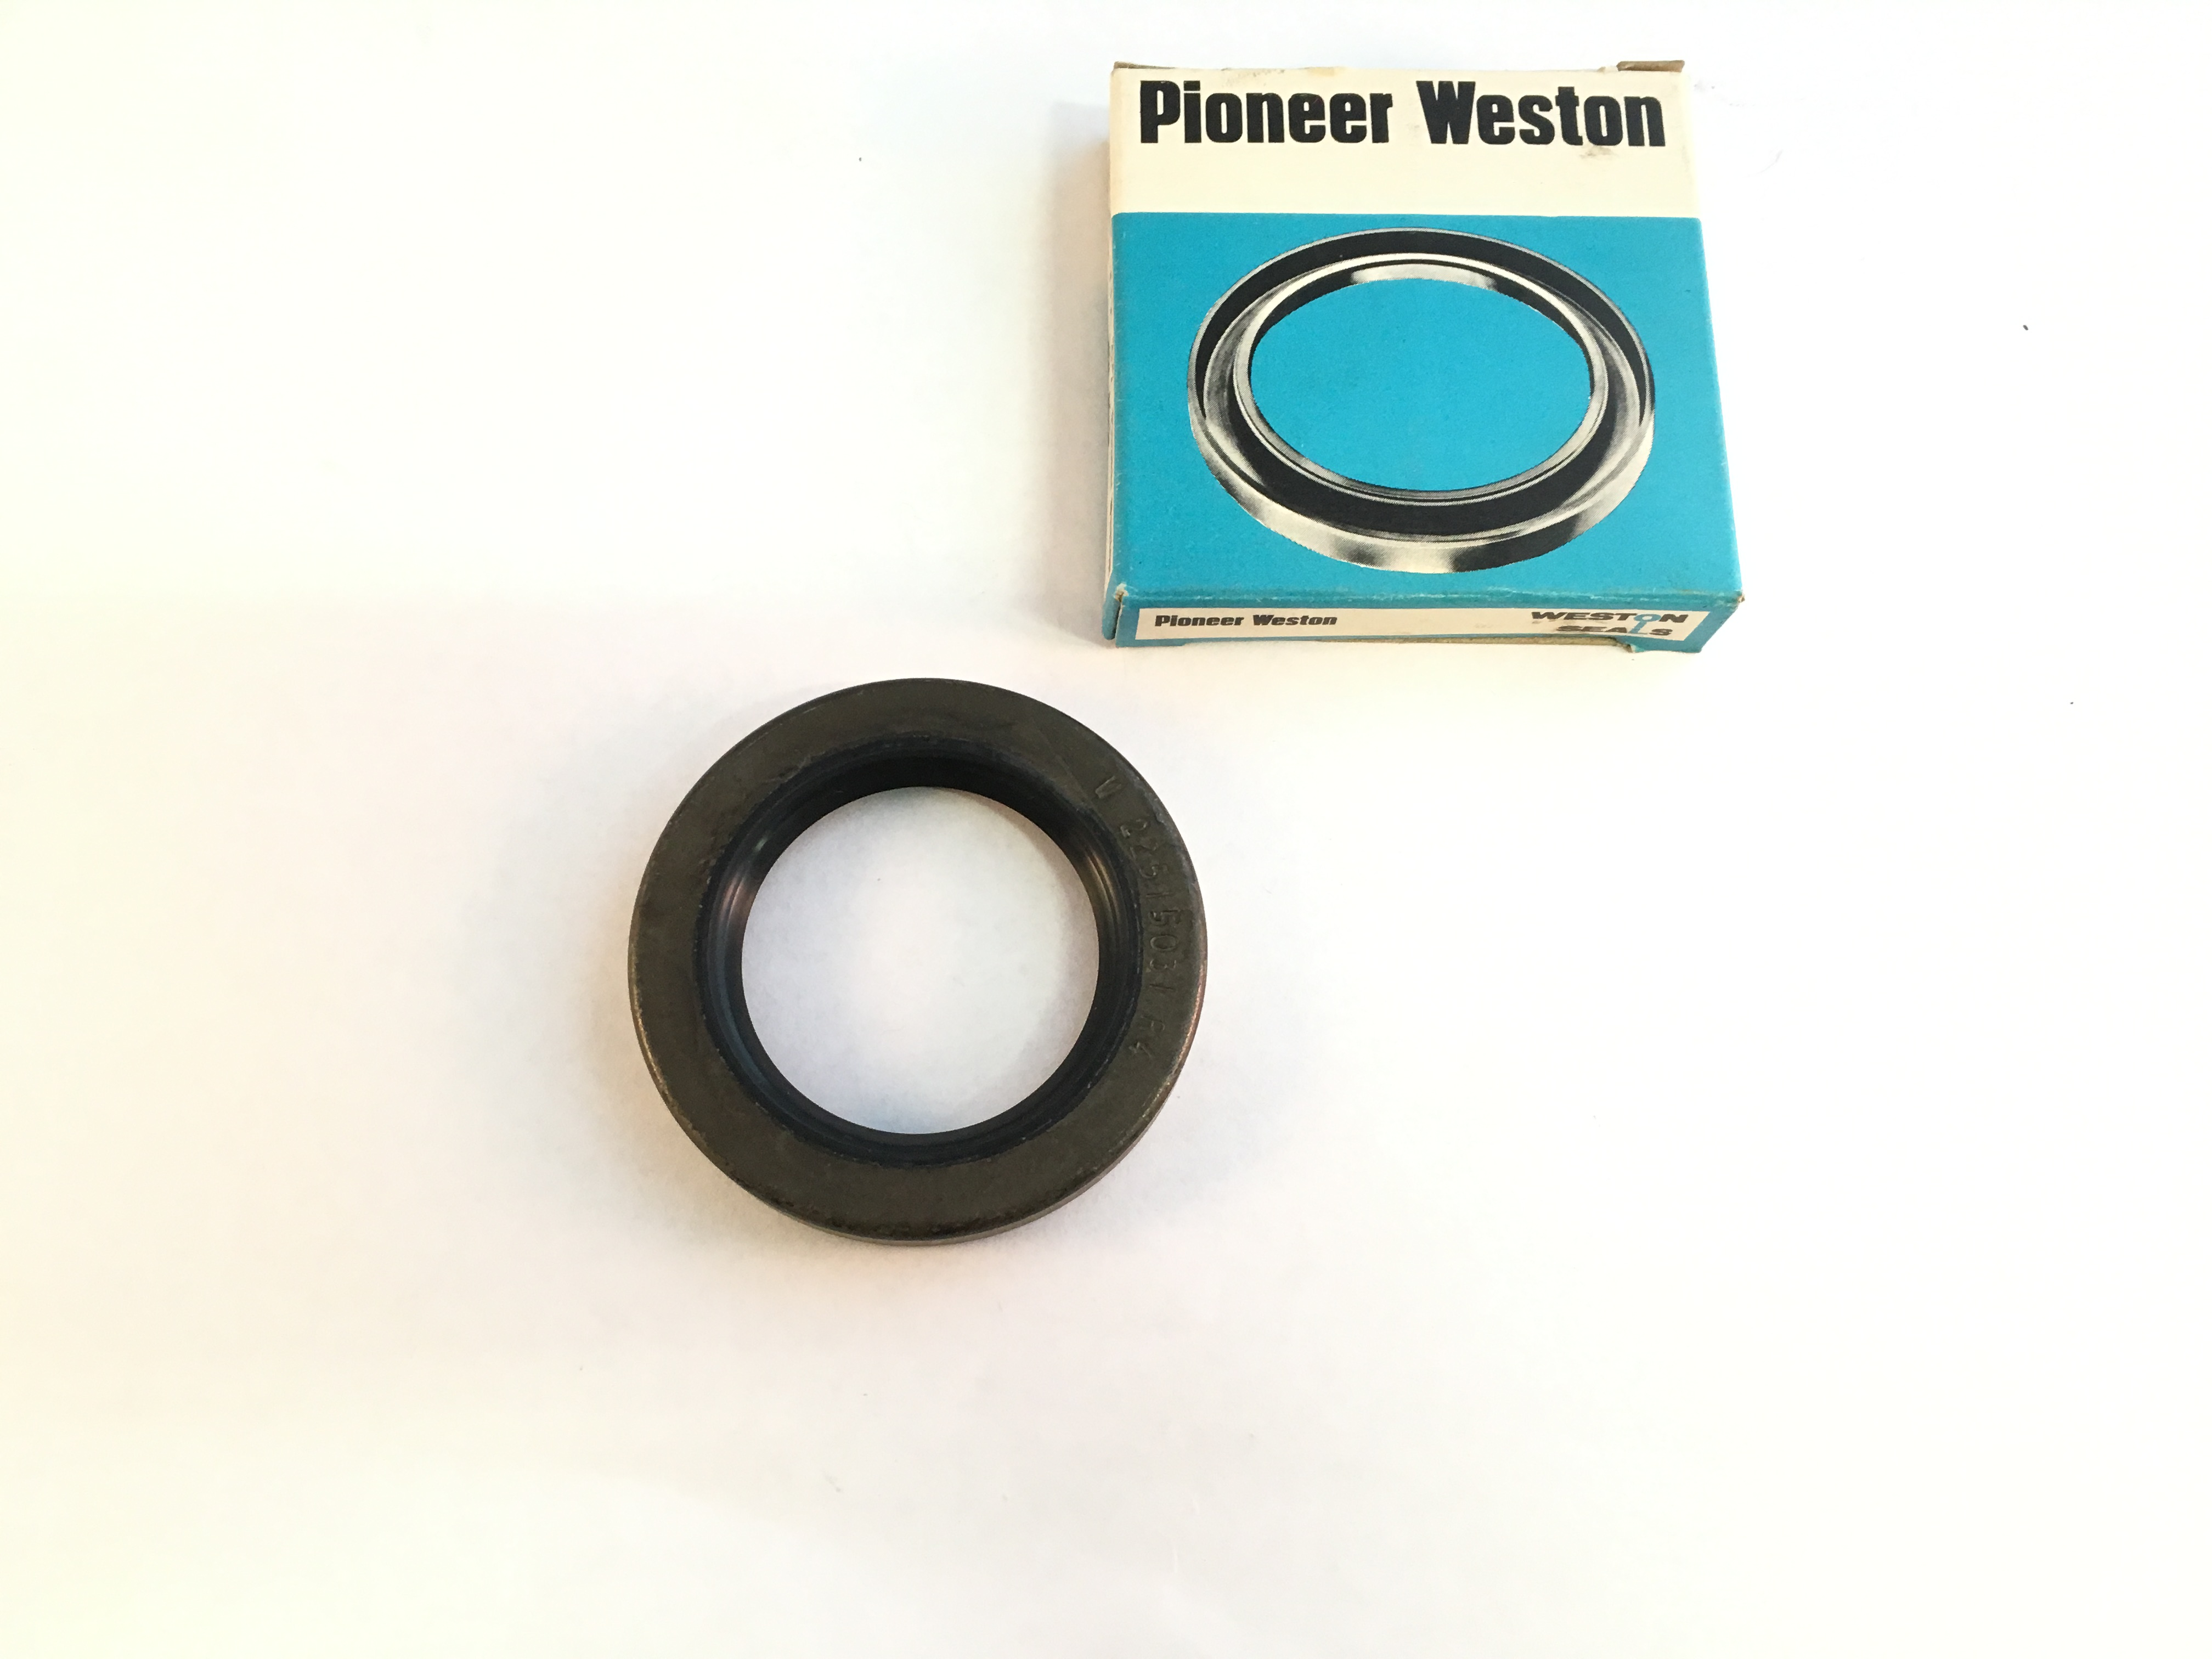 pioneer tr7 wiring parts of a window frame diagram triumph spitfire gt6 herald rear hub seal outer 107193